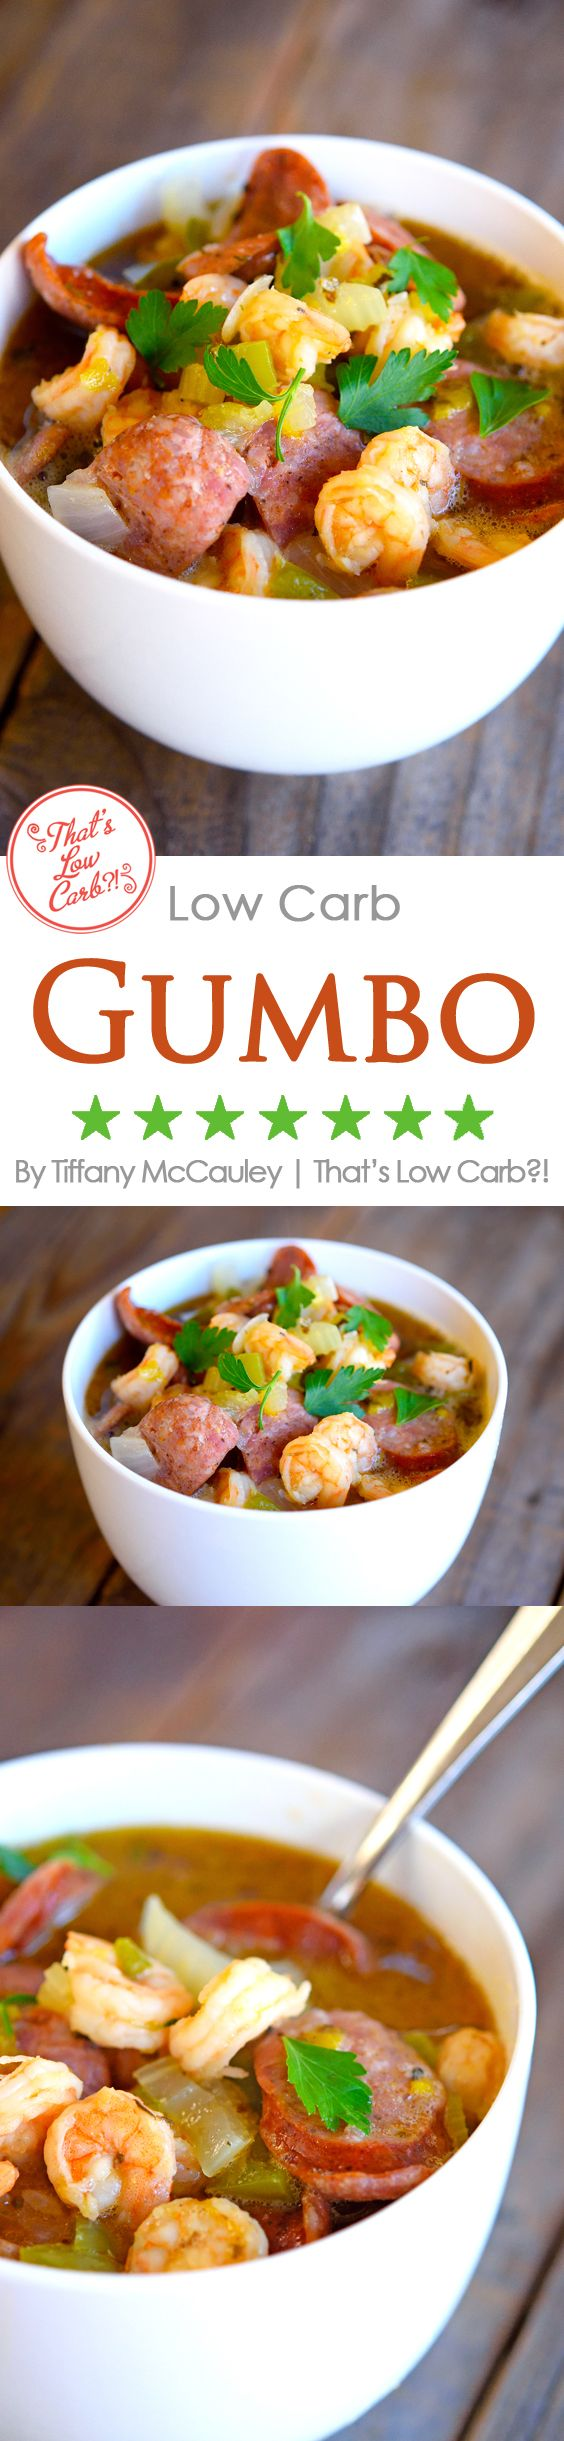 Low Carb Recipes | Low Carb Gumbo Recipe | Gumbo Recipes | Healthy Gumbo Recipe | Healthy Recipes ~ http://www.thatslowcarb.stfi.re